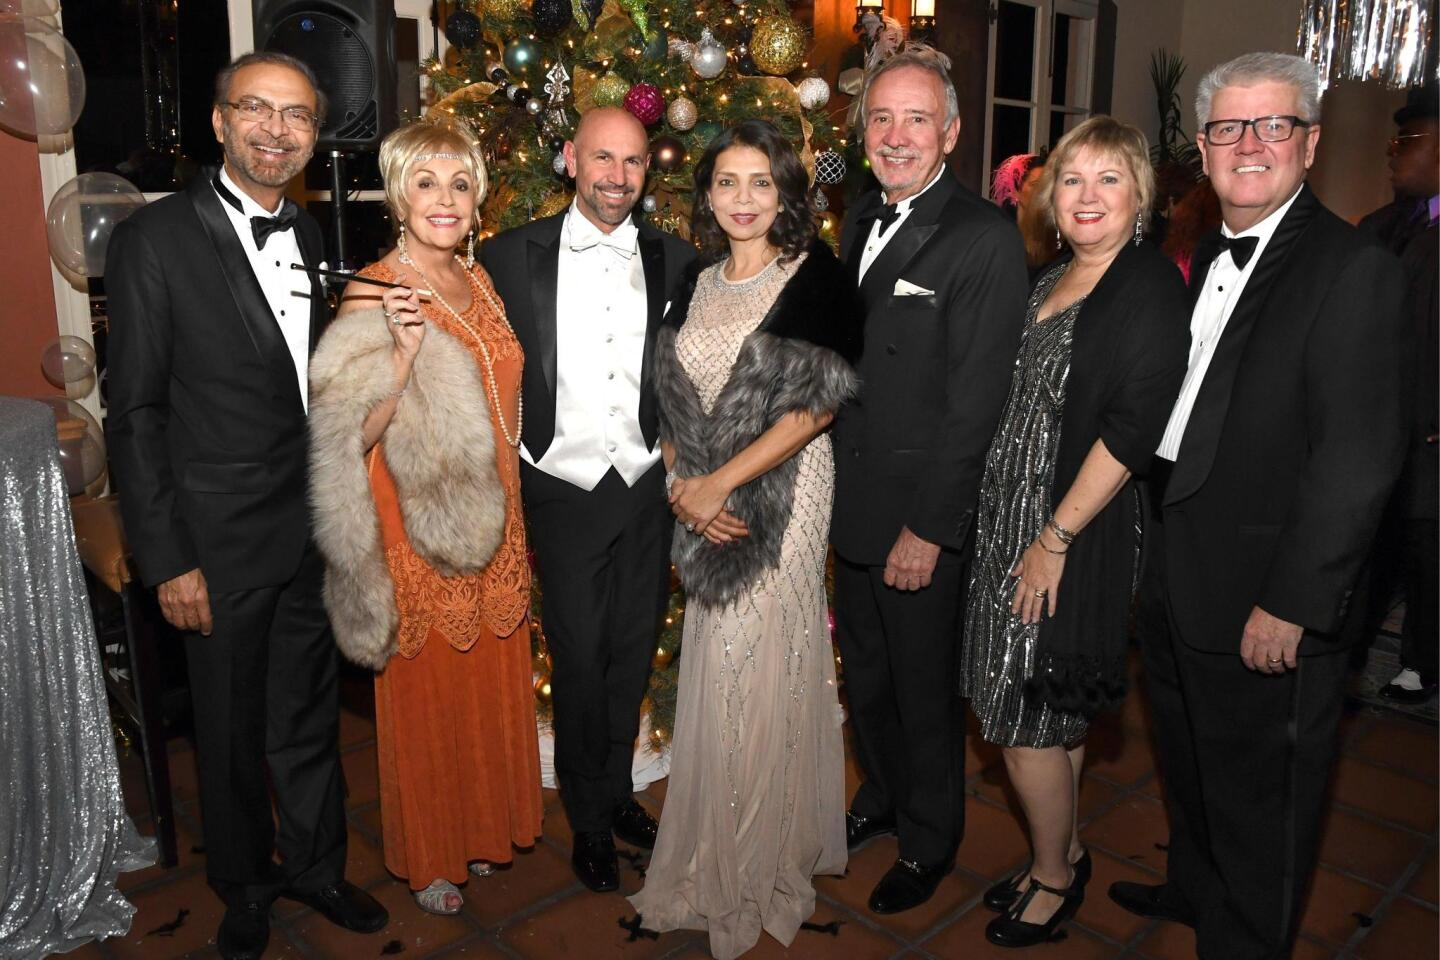 La Jolla's historic La Valencia Hotel threw a party nearly a century in the making, when it celebrated its 90th anniversary, Dec. 15, 2016 with a Gatsby-themed Gala. Proceeds benefited La Jolla Historical Society.